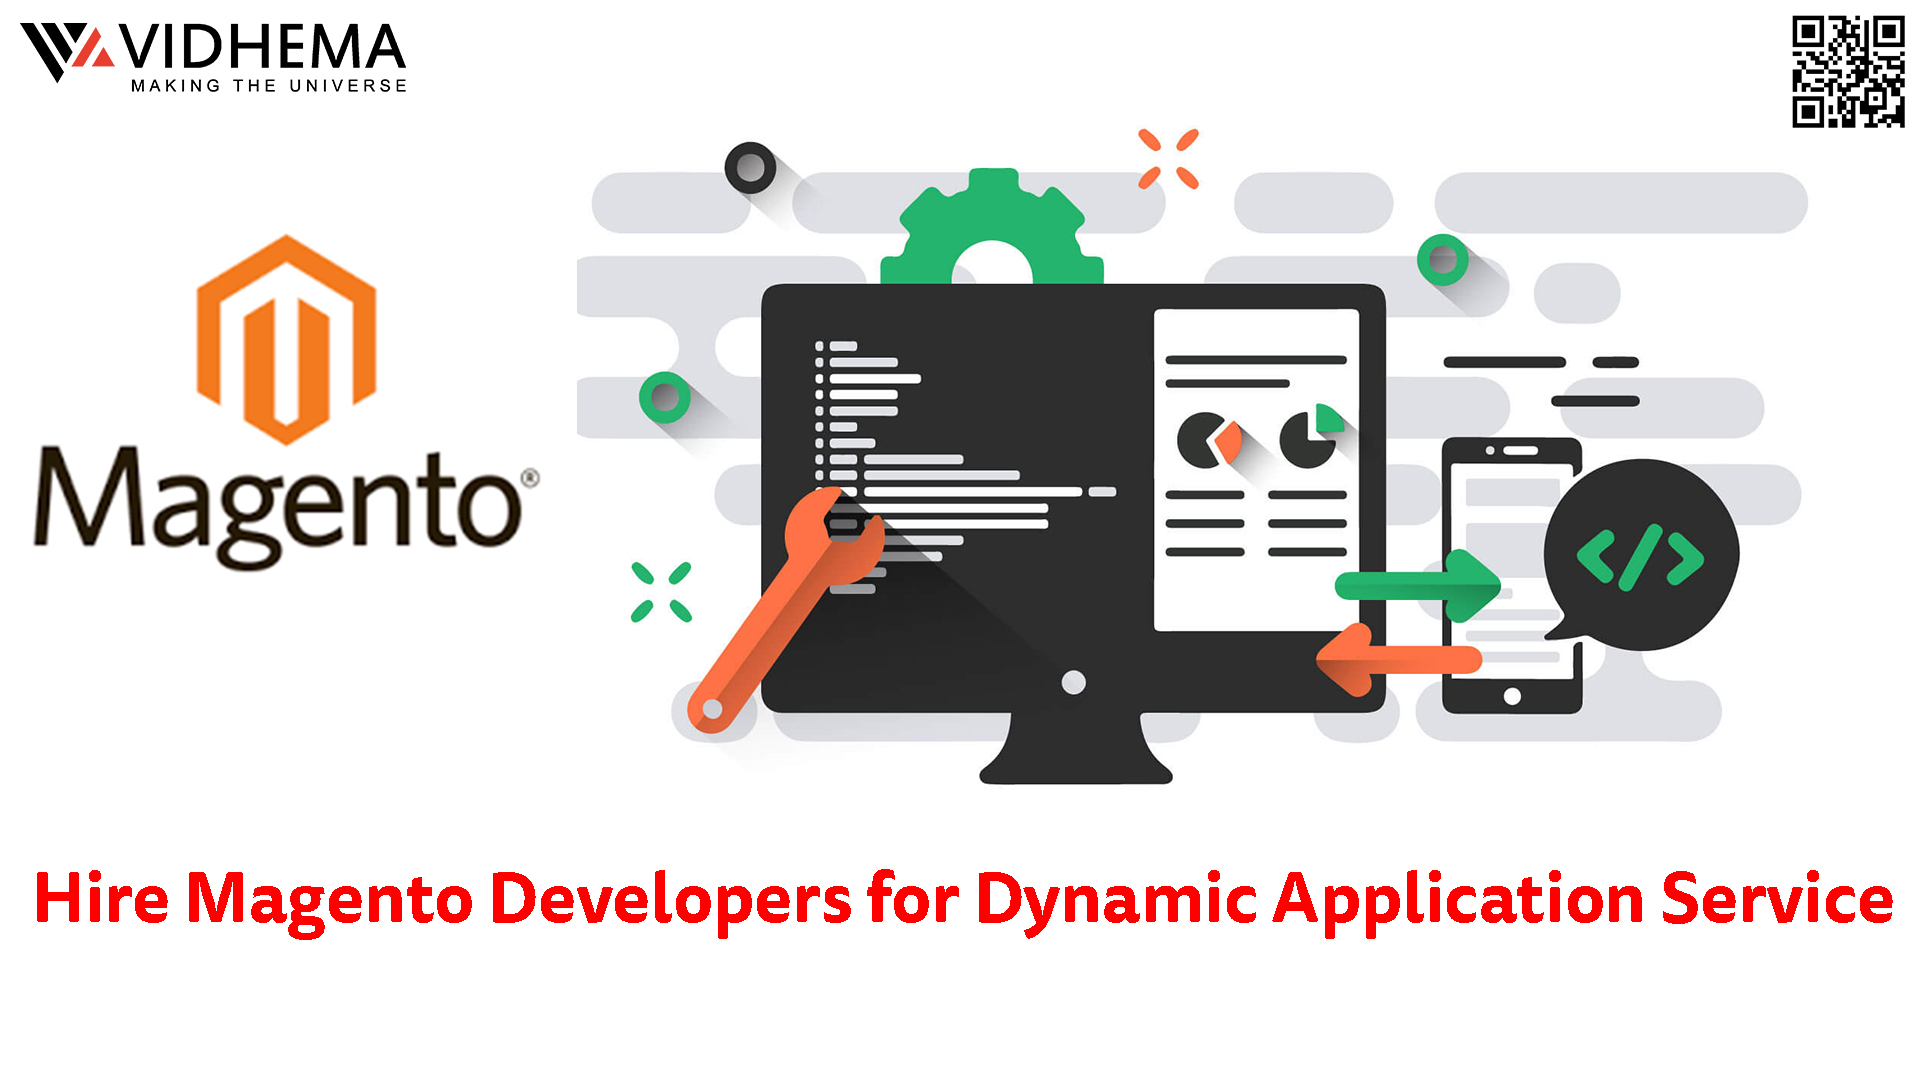 Hire Magento Developers for Dynamic Application Service